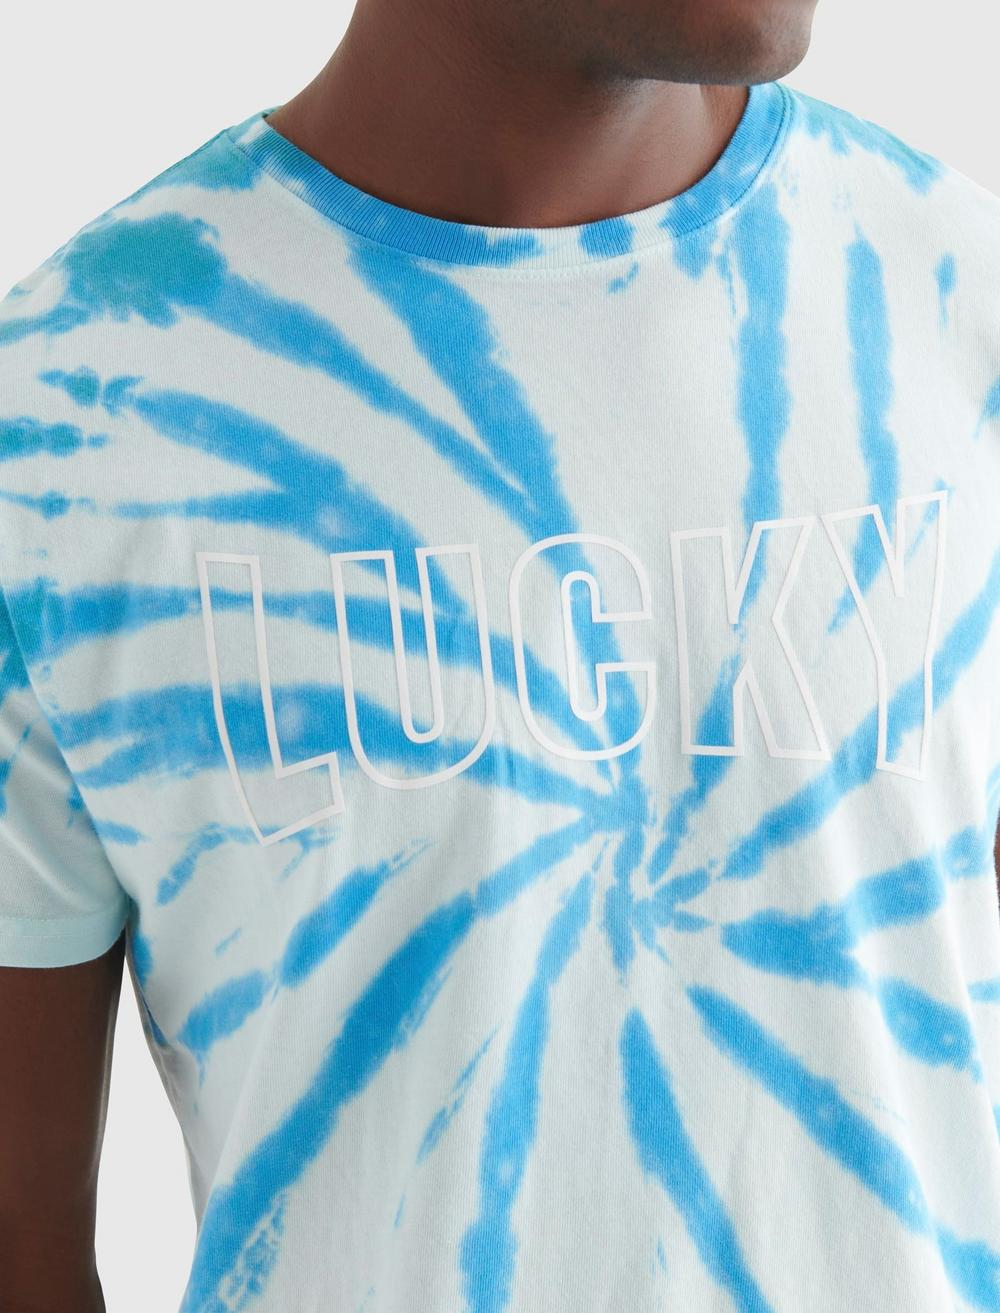 LUCKY BRANDED TEE, image 3